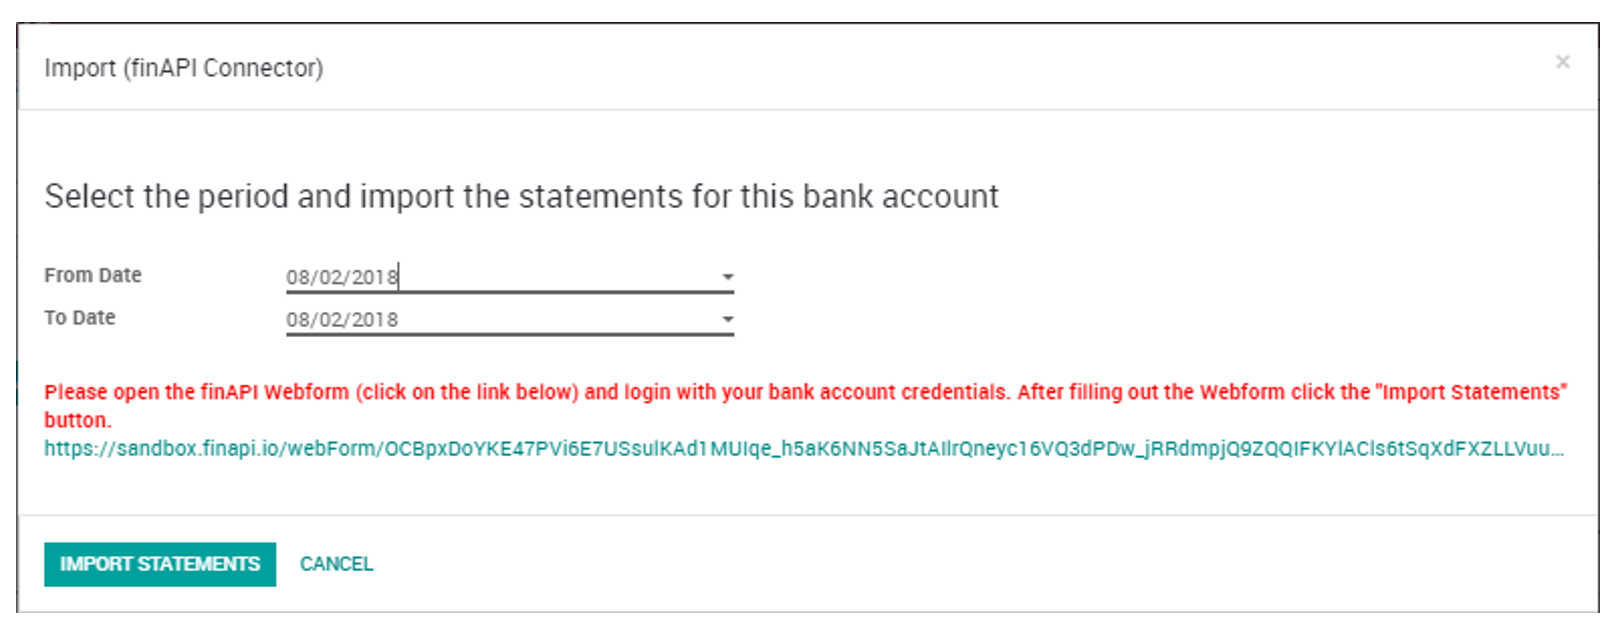 Import new Bank Statements with the finAPI Connector